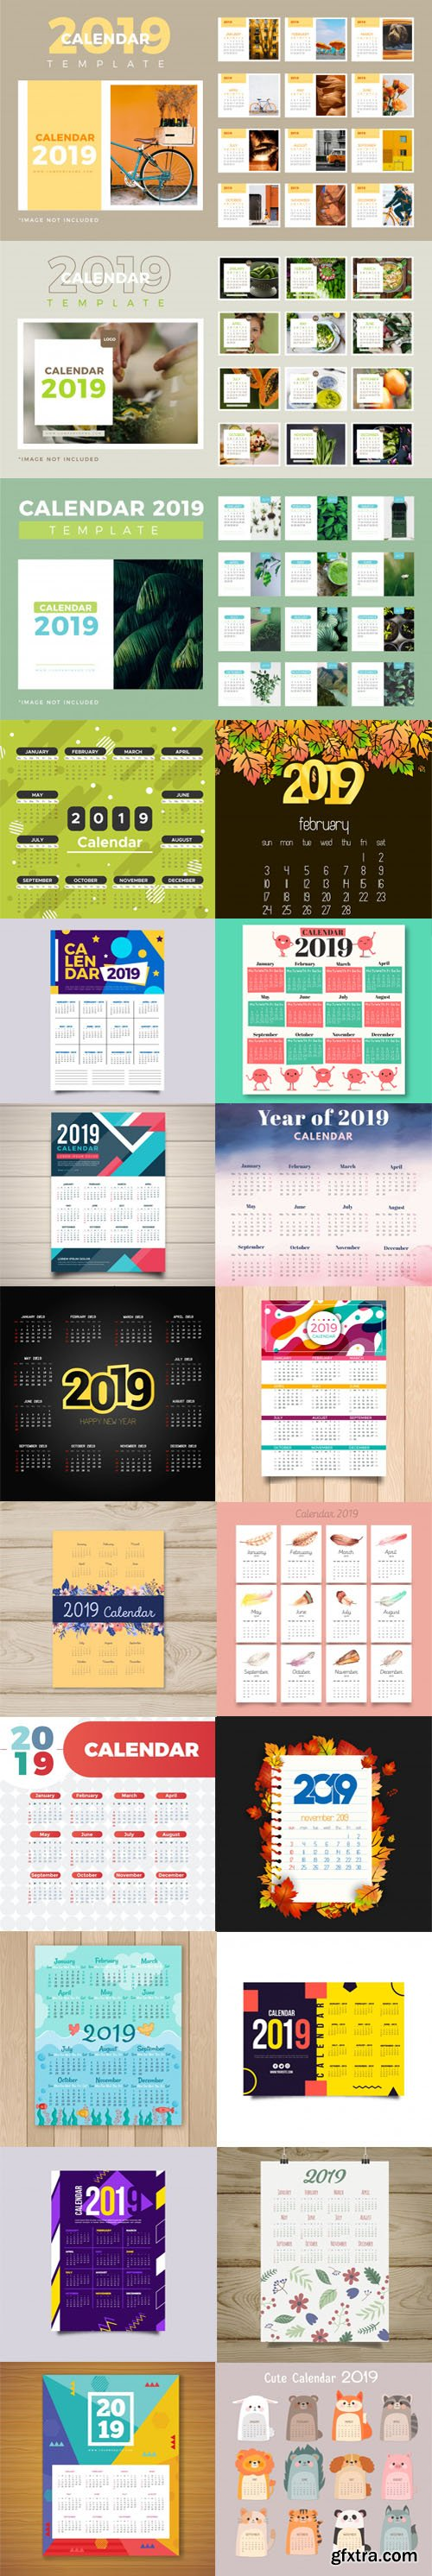 2019 Calendar Vector Templates Collection 2 [25 Calendars]